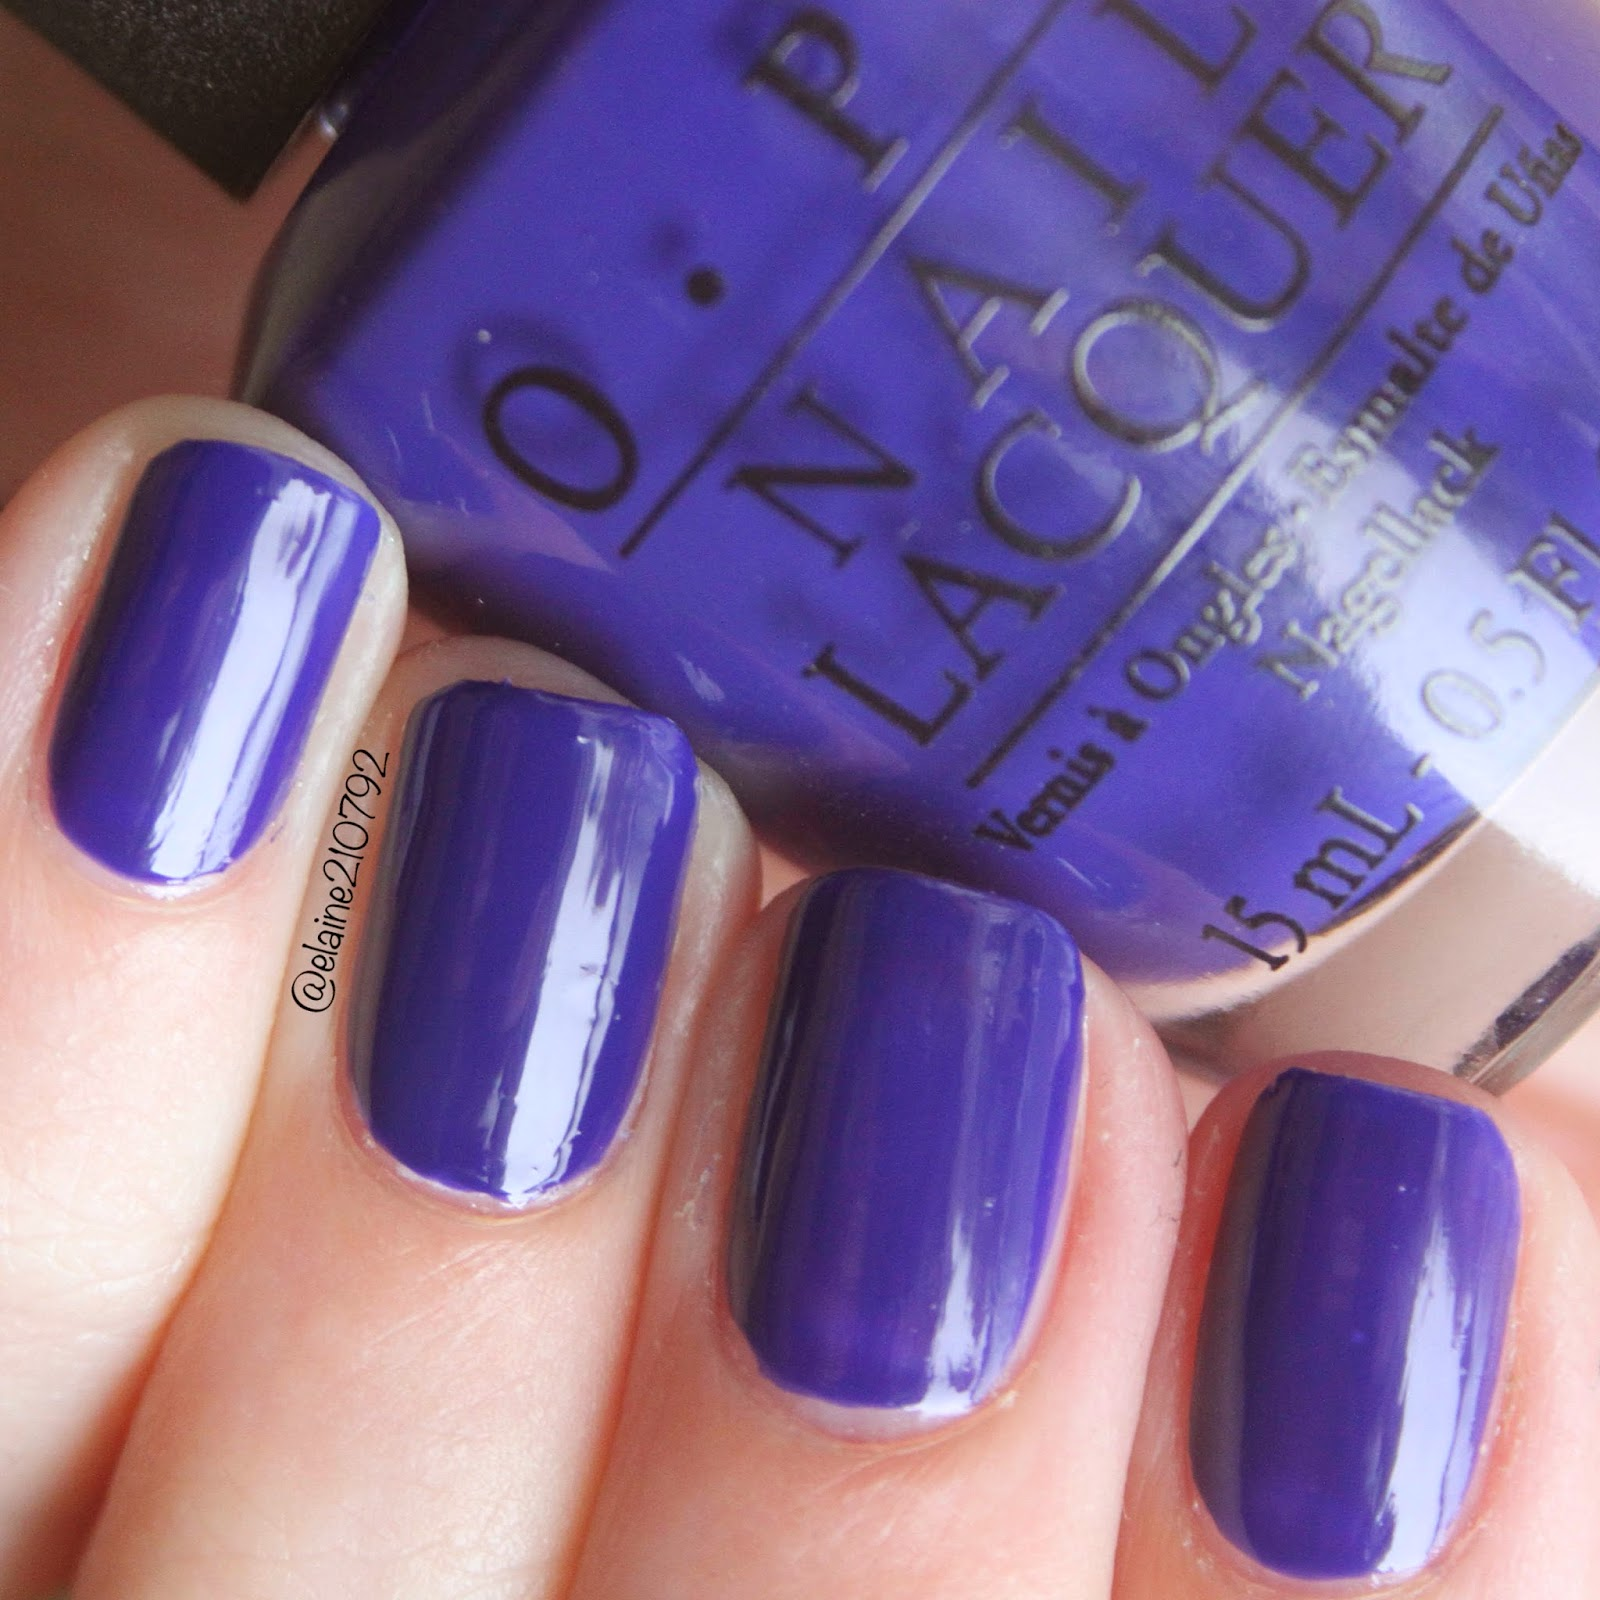 Fine 3d Nail Art Designs Pictures Tiny Nail Polish Holder Walmart Clean Gel Nail Polish Directions Justice Nail Polish Youthful Cobalt Blue Nail Polish Orange3d Nail Art Accessories Top 10 Nail Polish Colors Of All Time \u2013 Beautiful Nails For You